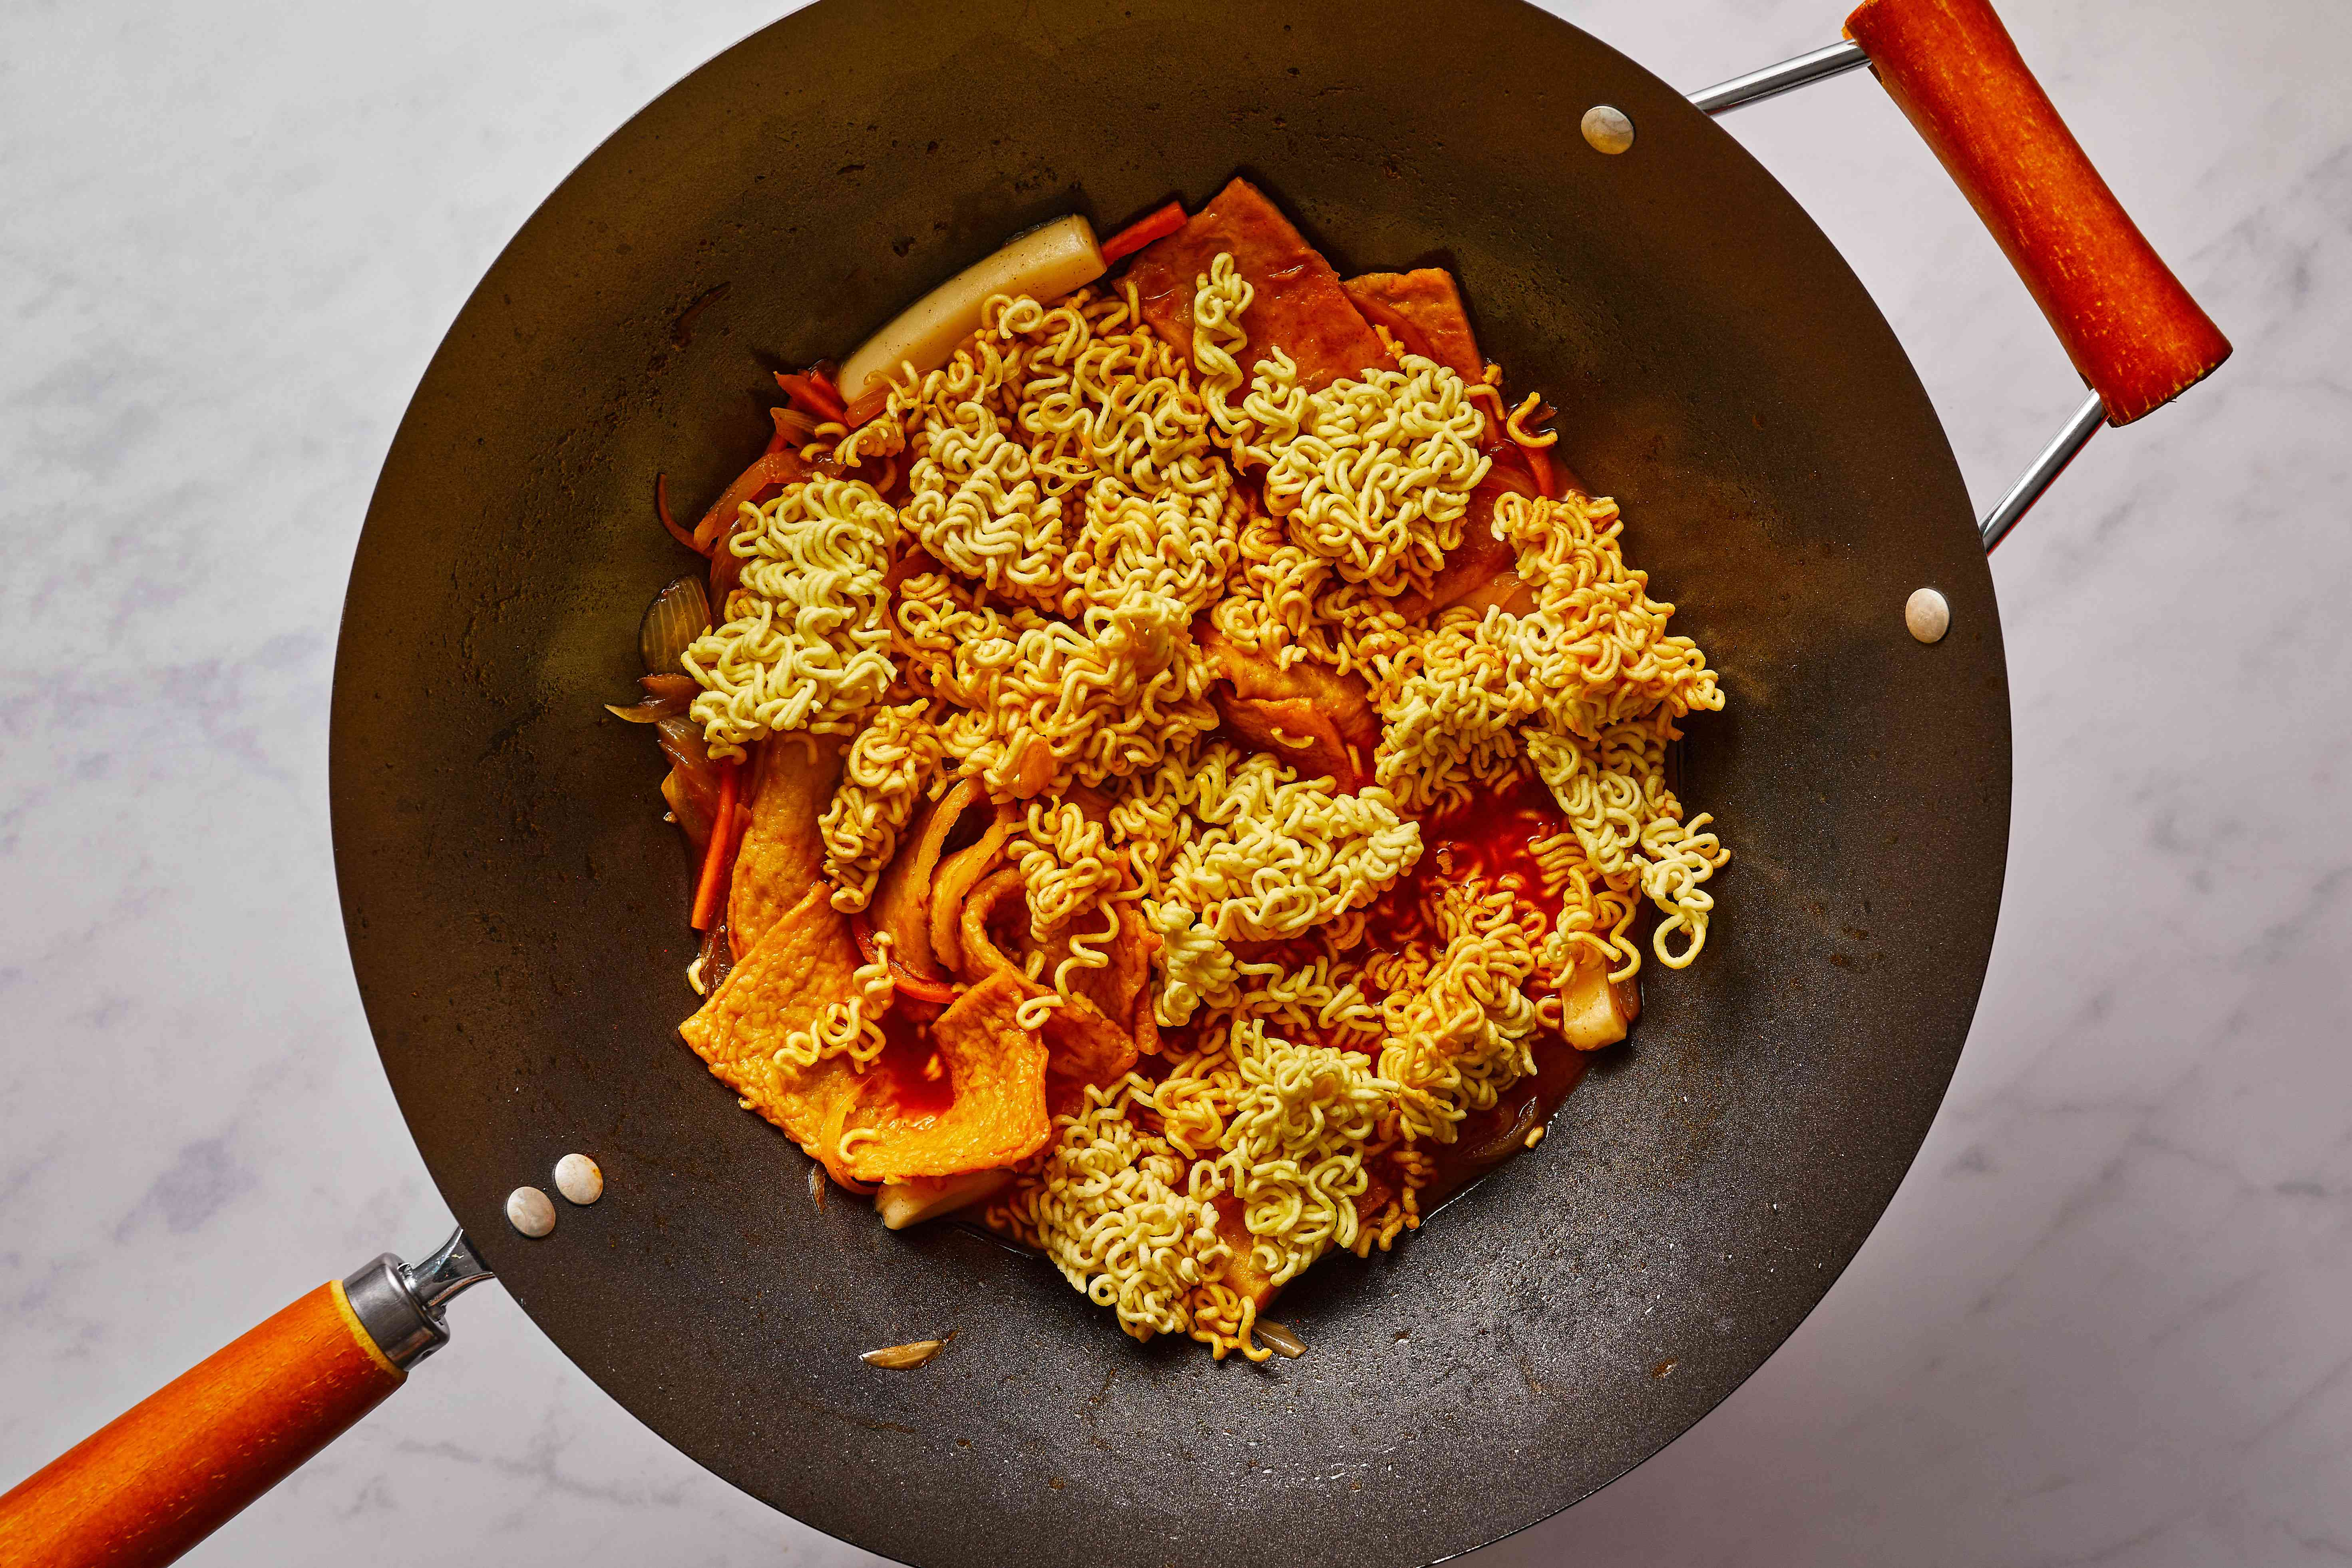 ramen added to the mixture in the pan